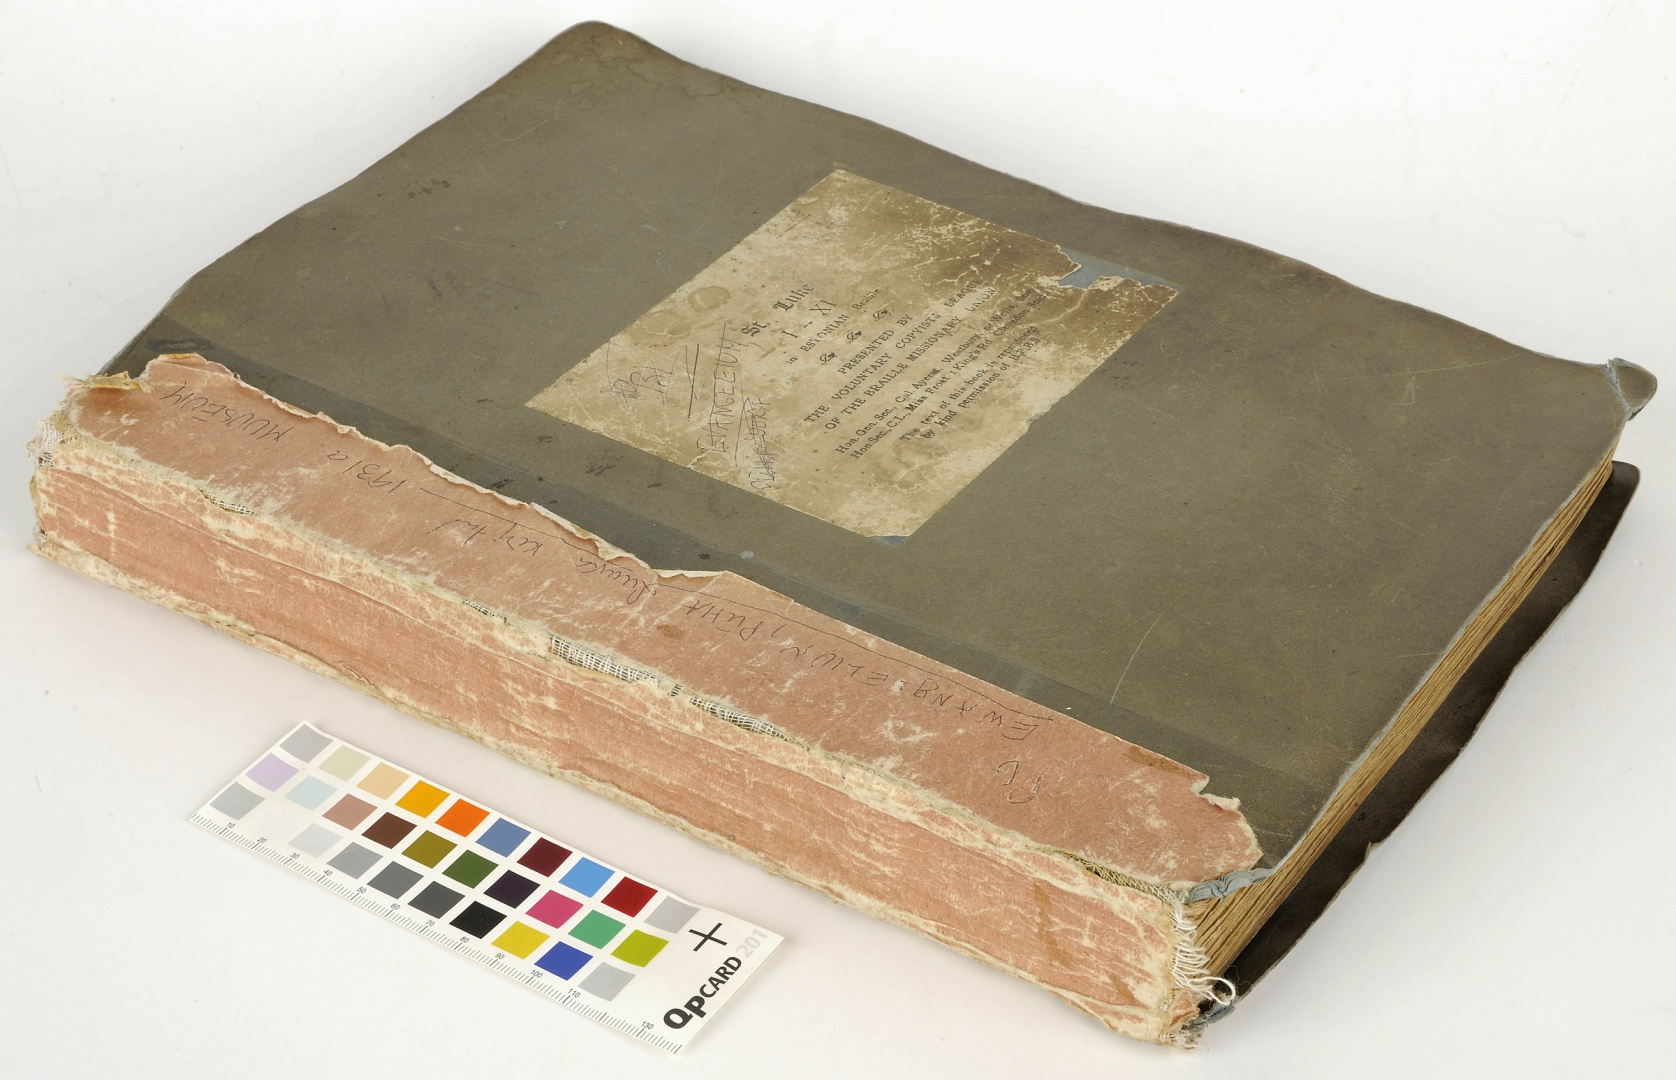 ill 1. The book before conservation.